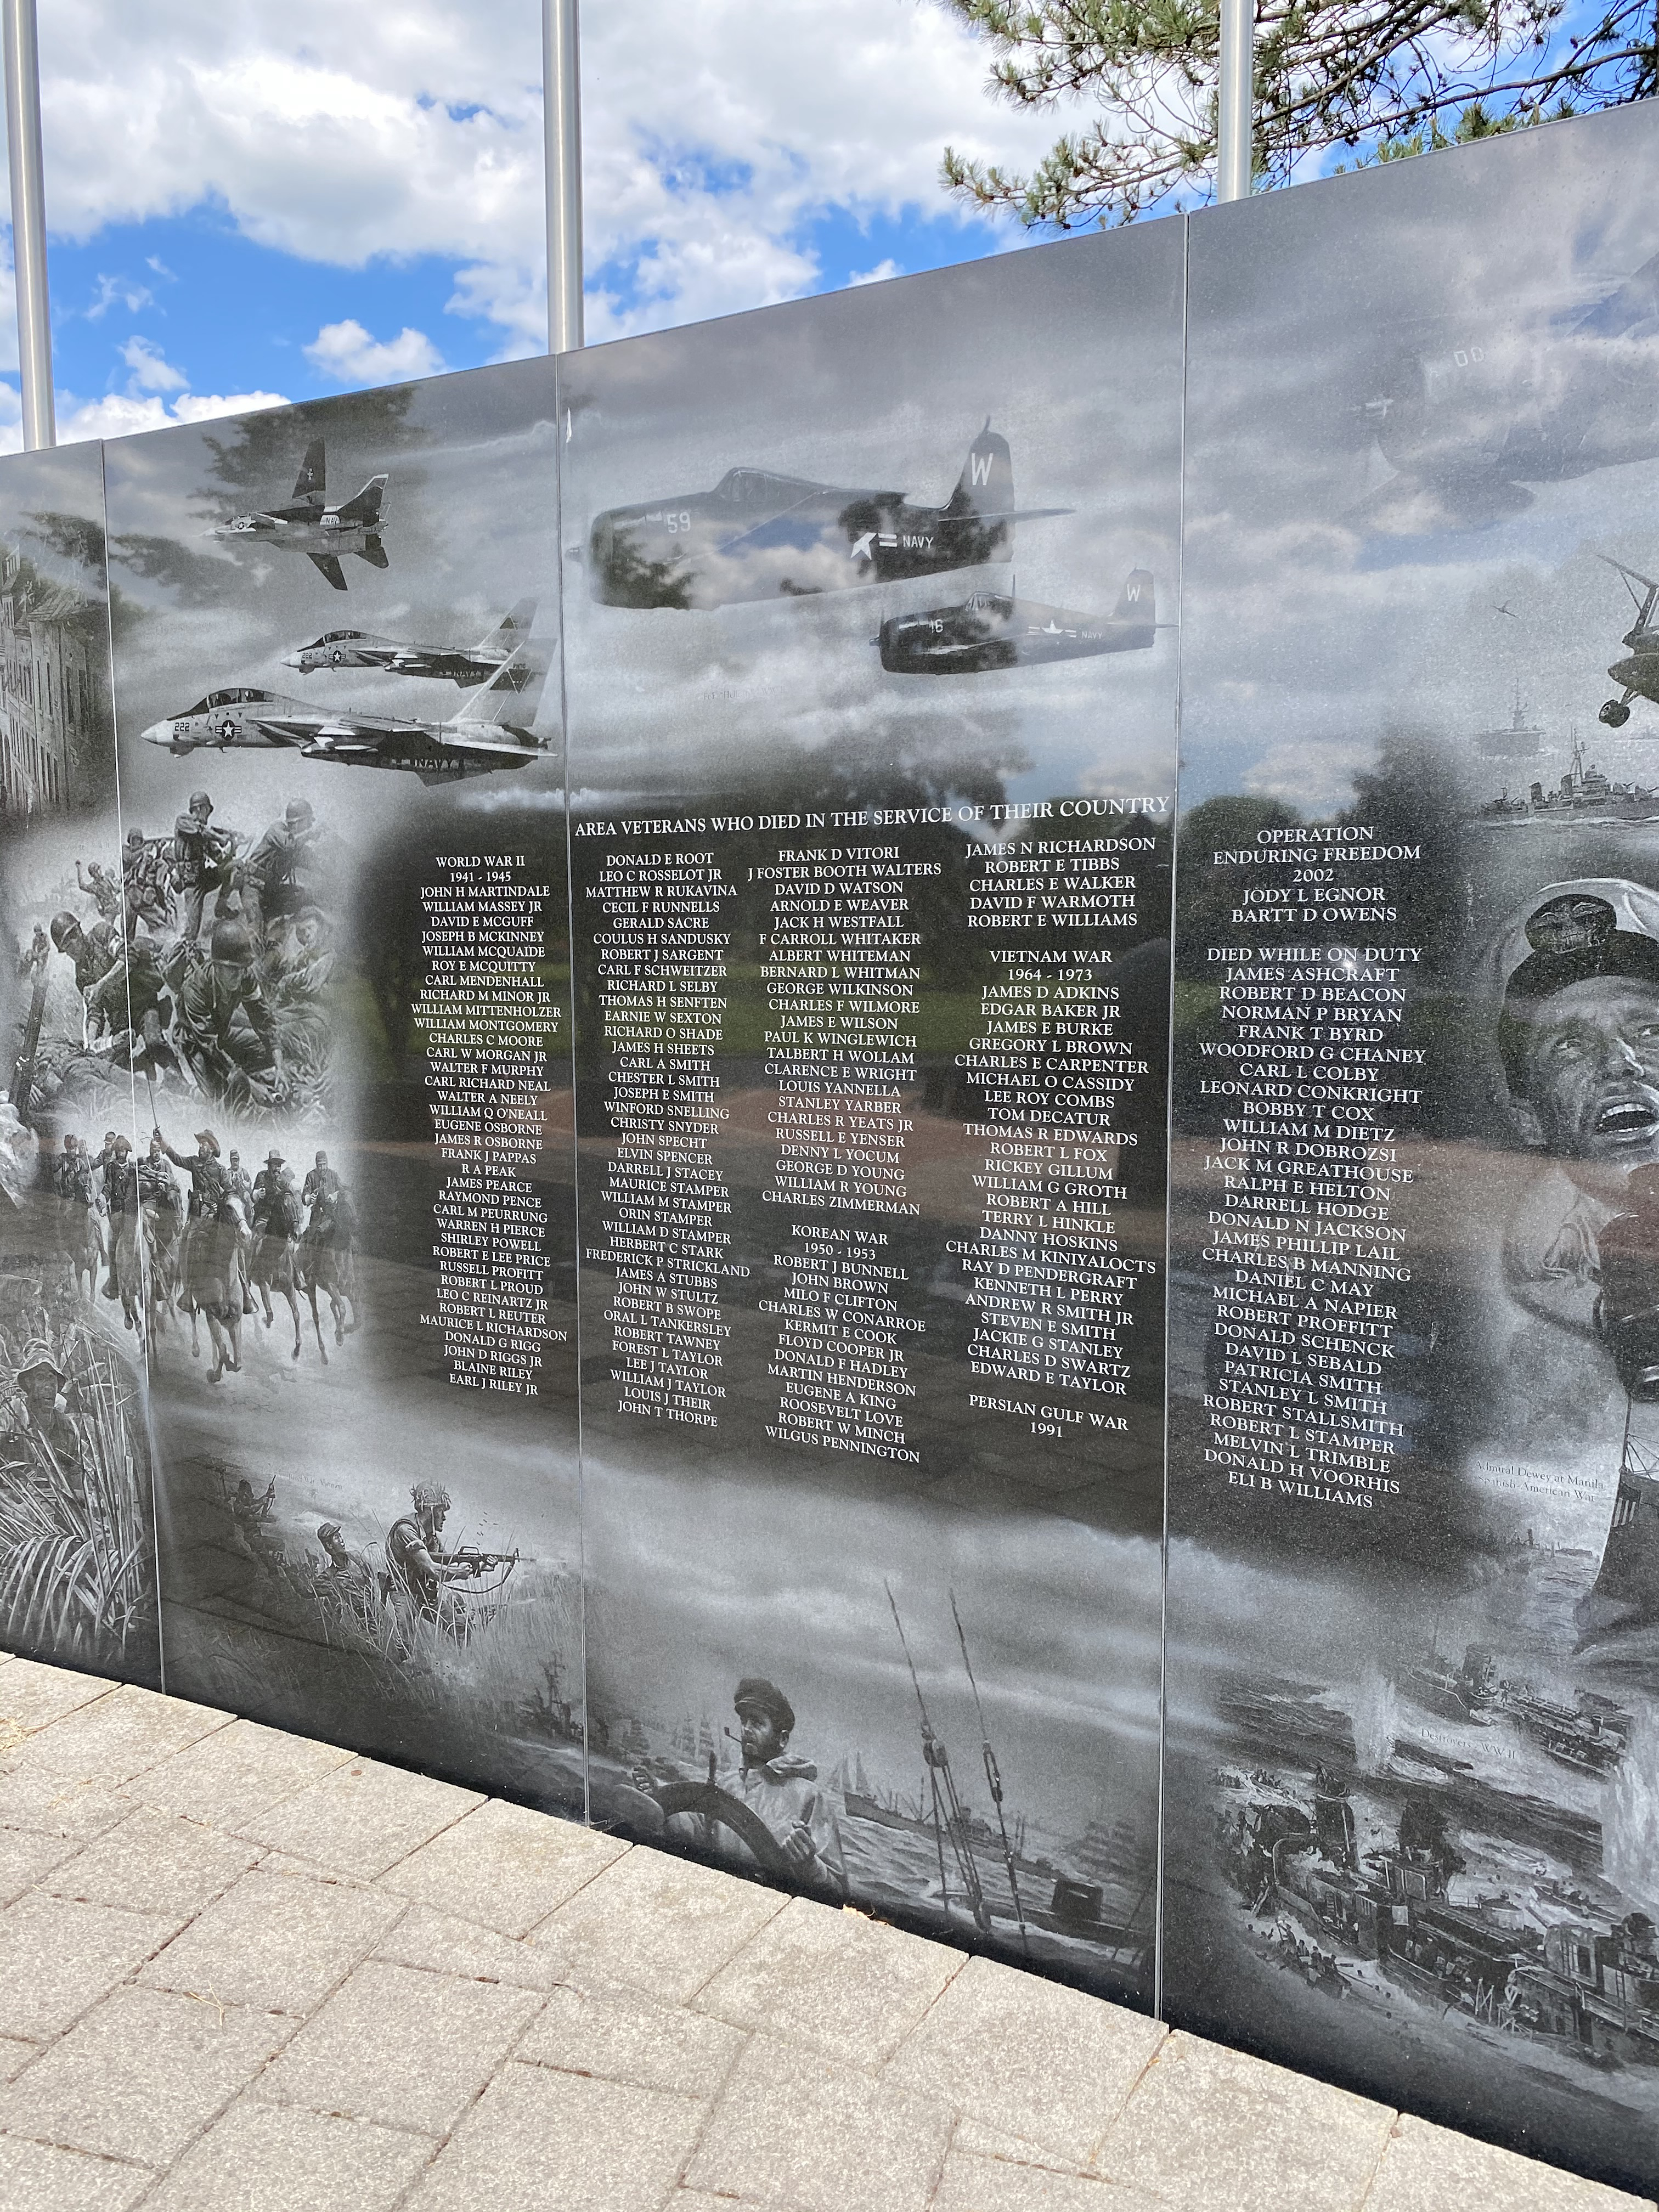 Area Veterans who died during their service